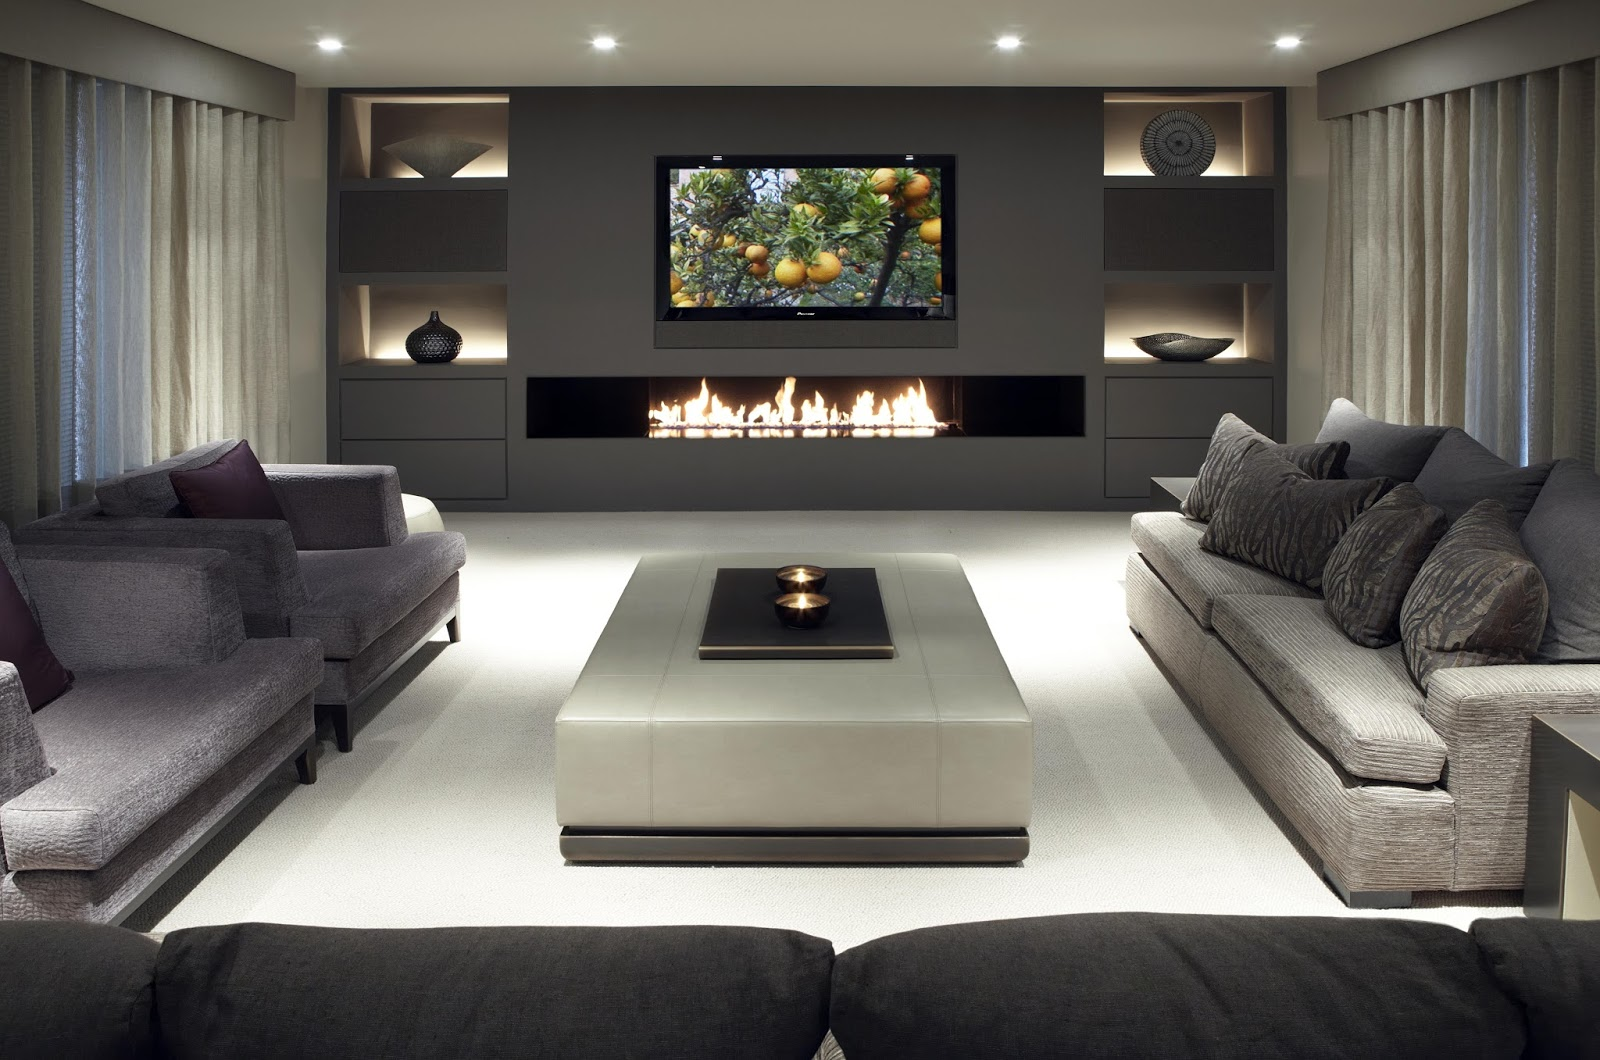 Design Media Room Ideas 3 media room ideas that will suit you luhomes wonderful with modern fireplace under wall mounted 3d tv and gray fabric sectional